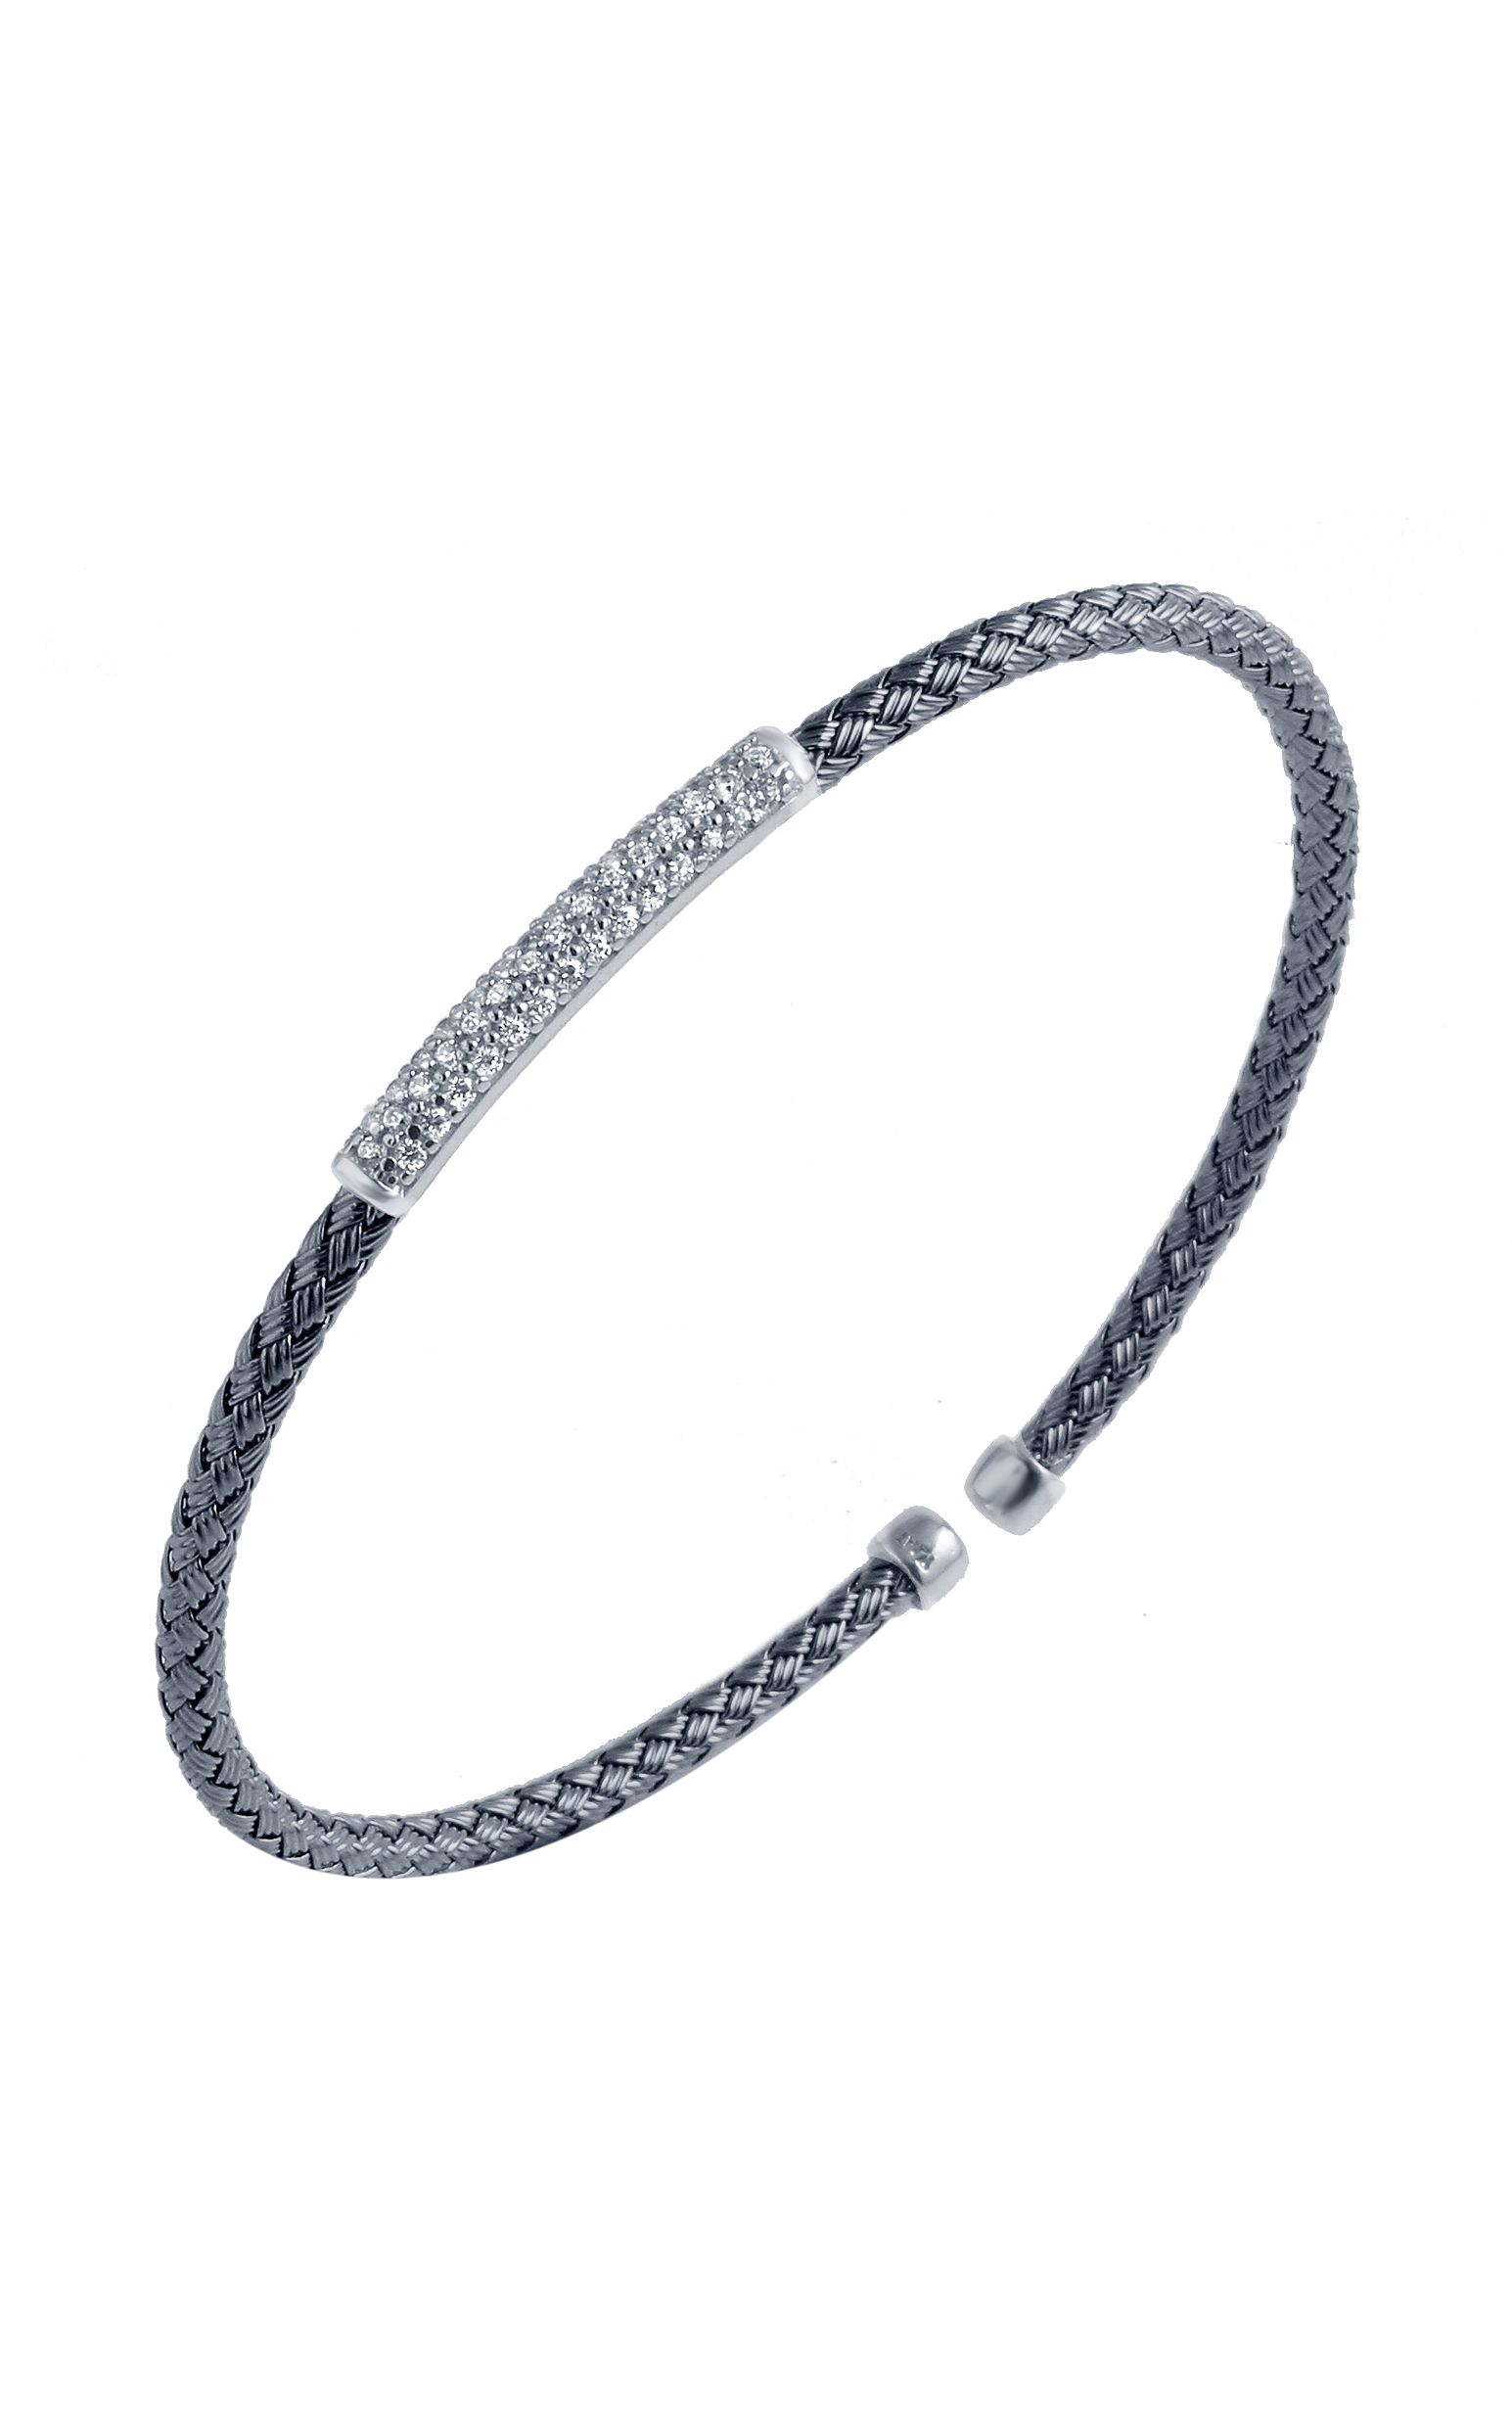 Charles Garnier Bracelet Paolo Collection MLC8001BWZ product image